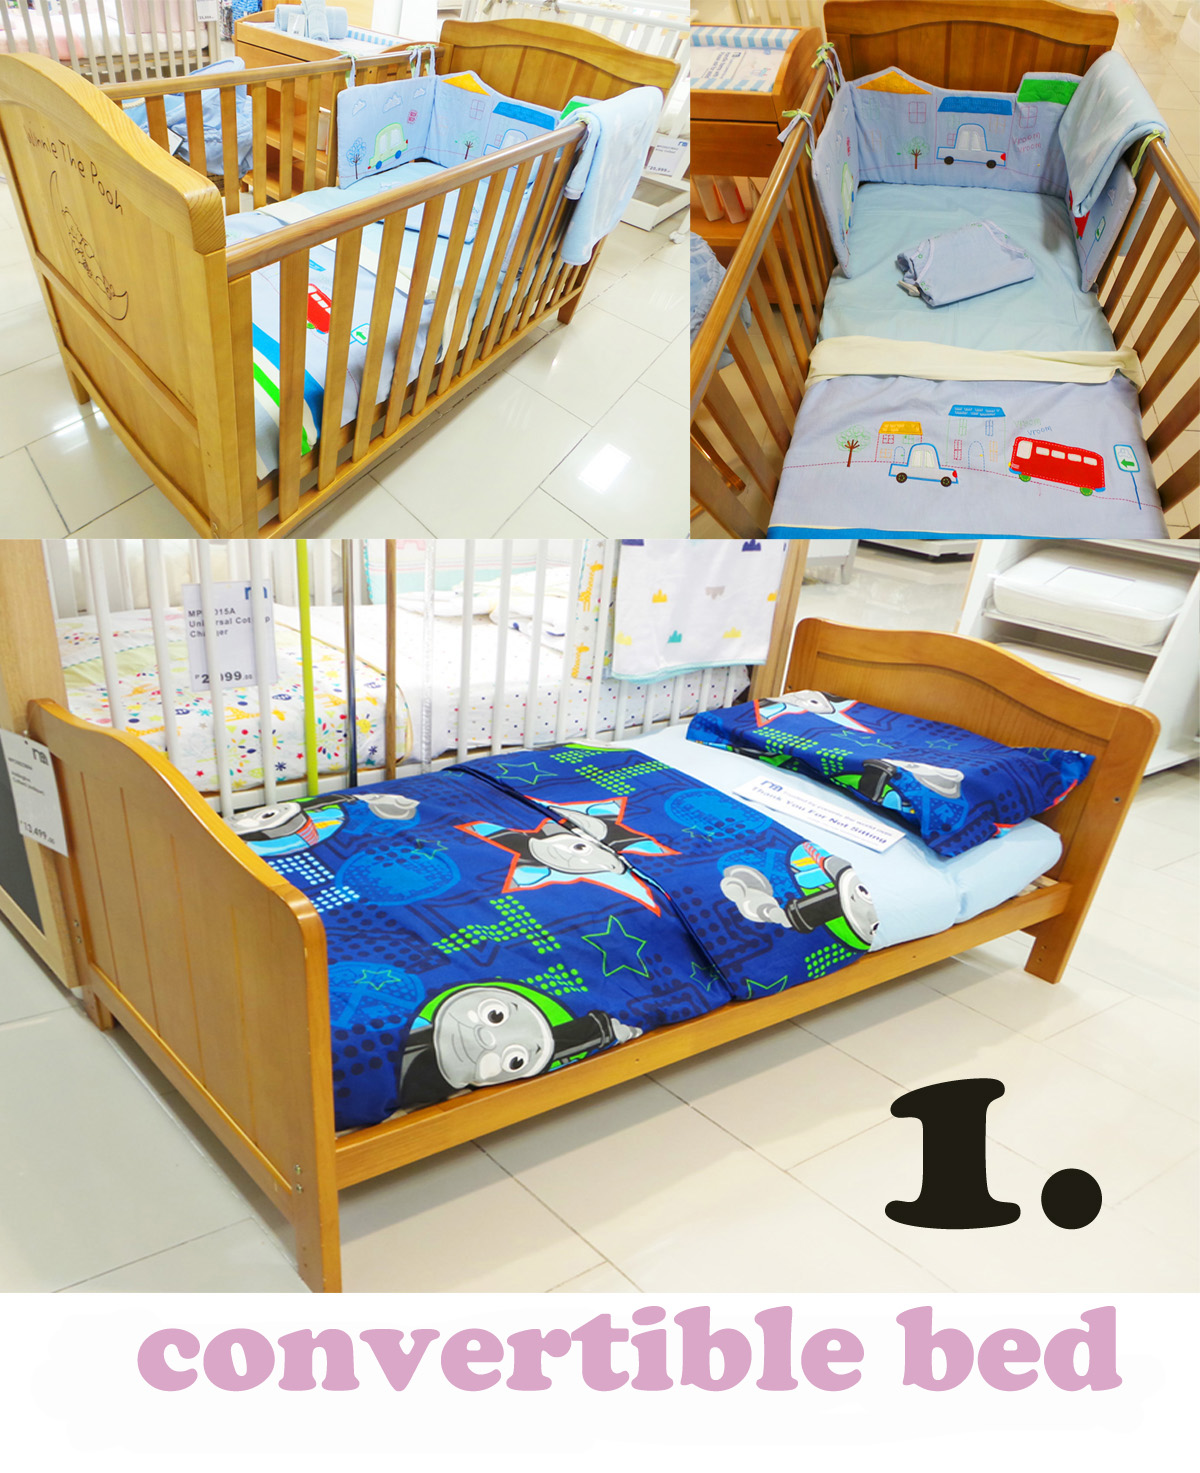 Crib for babies philippines - Baby Crib For Sale Online Philippines What A Smart Way To Design A Crib You